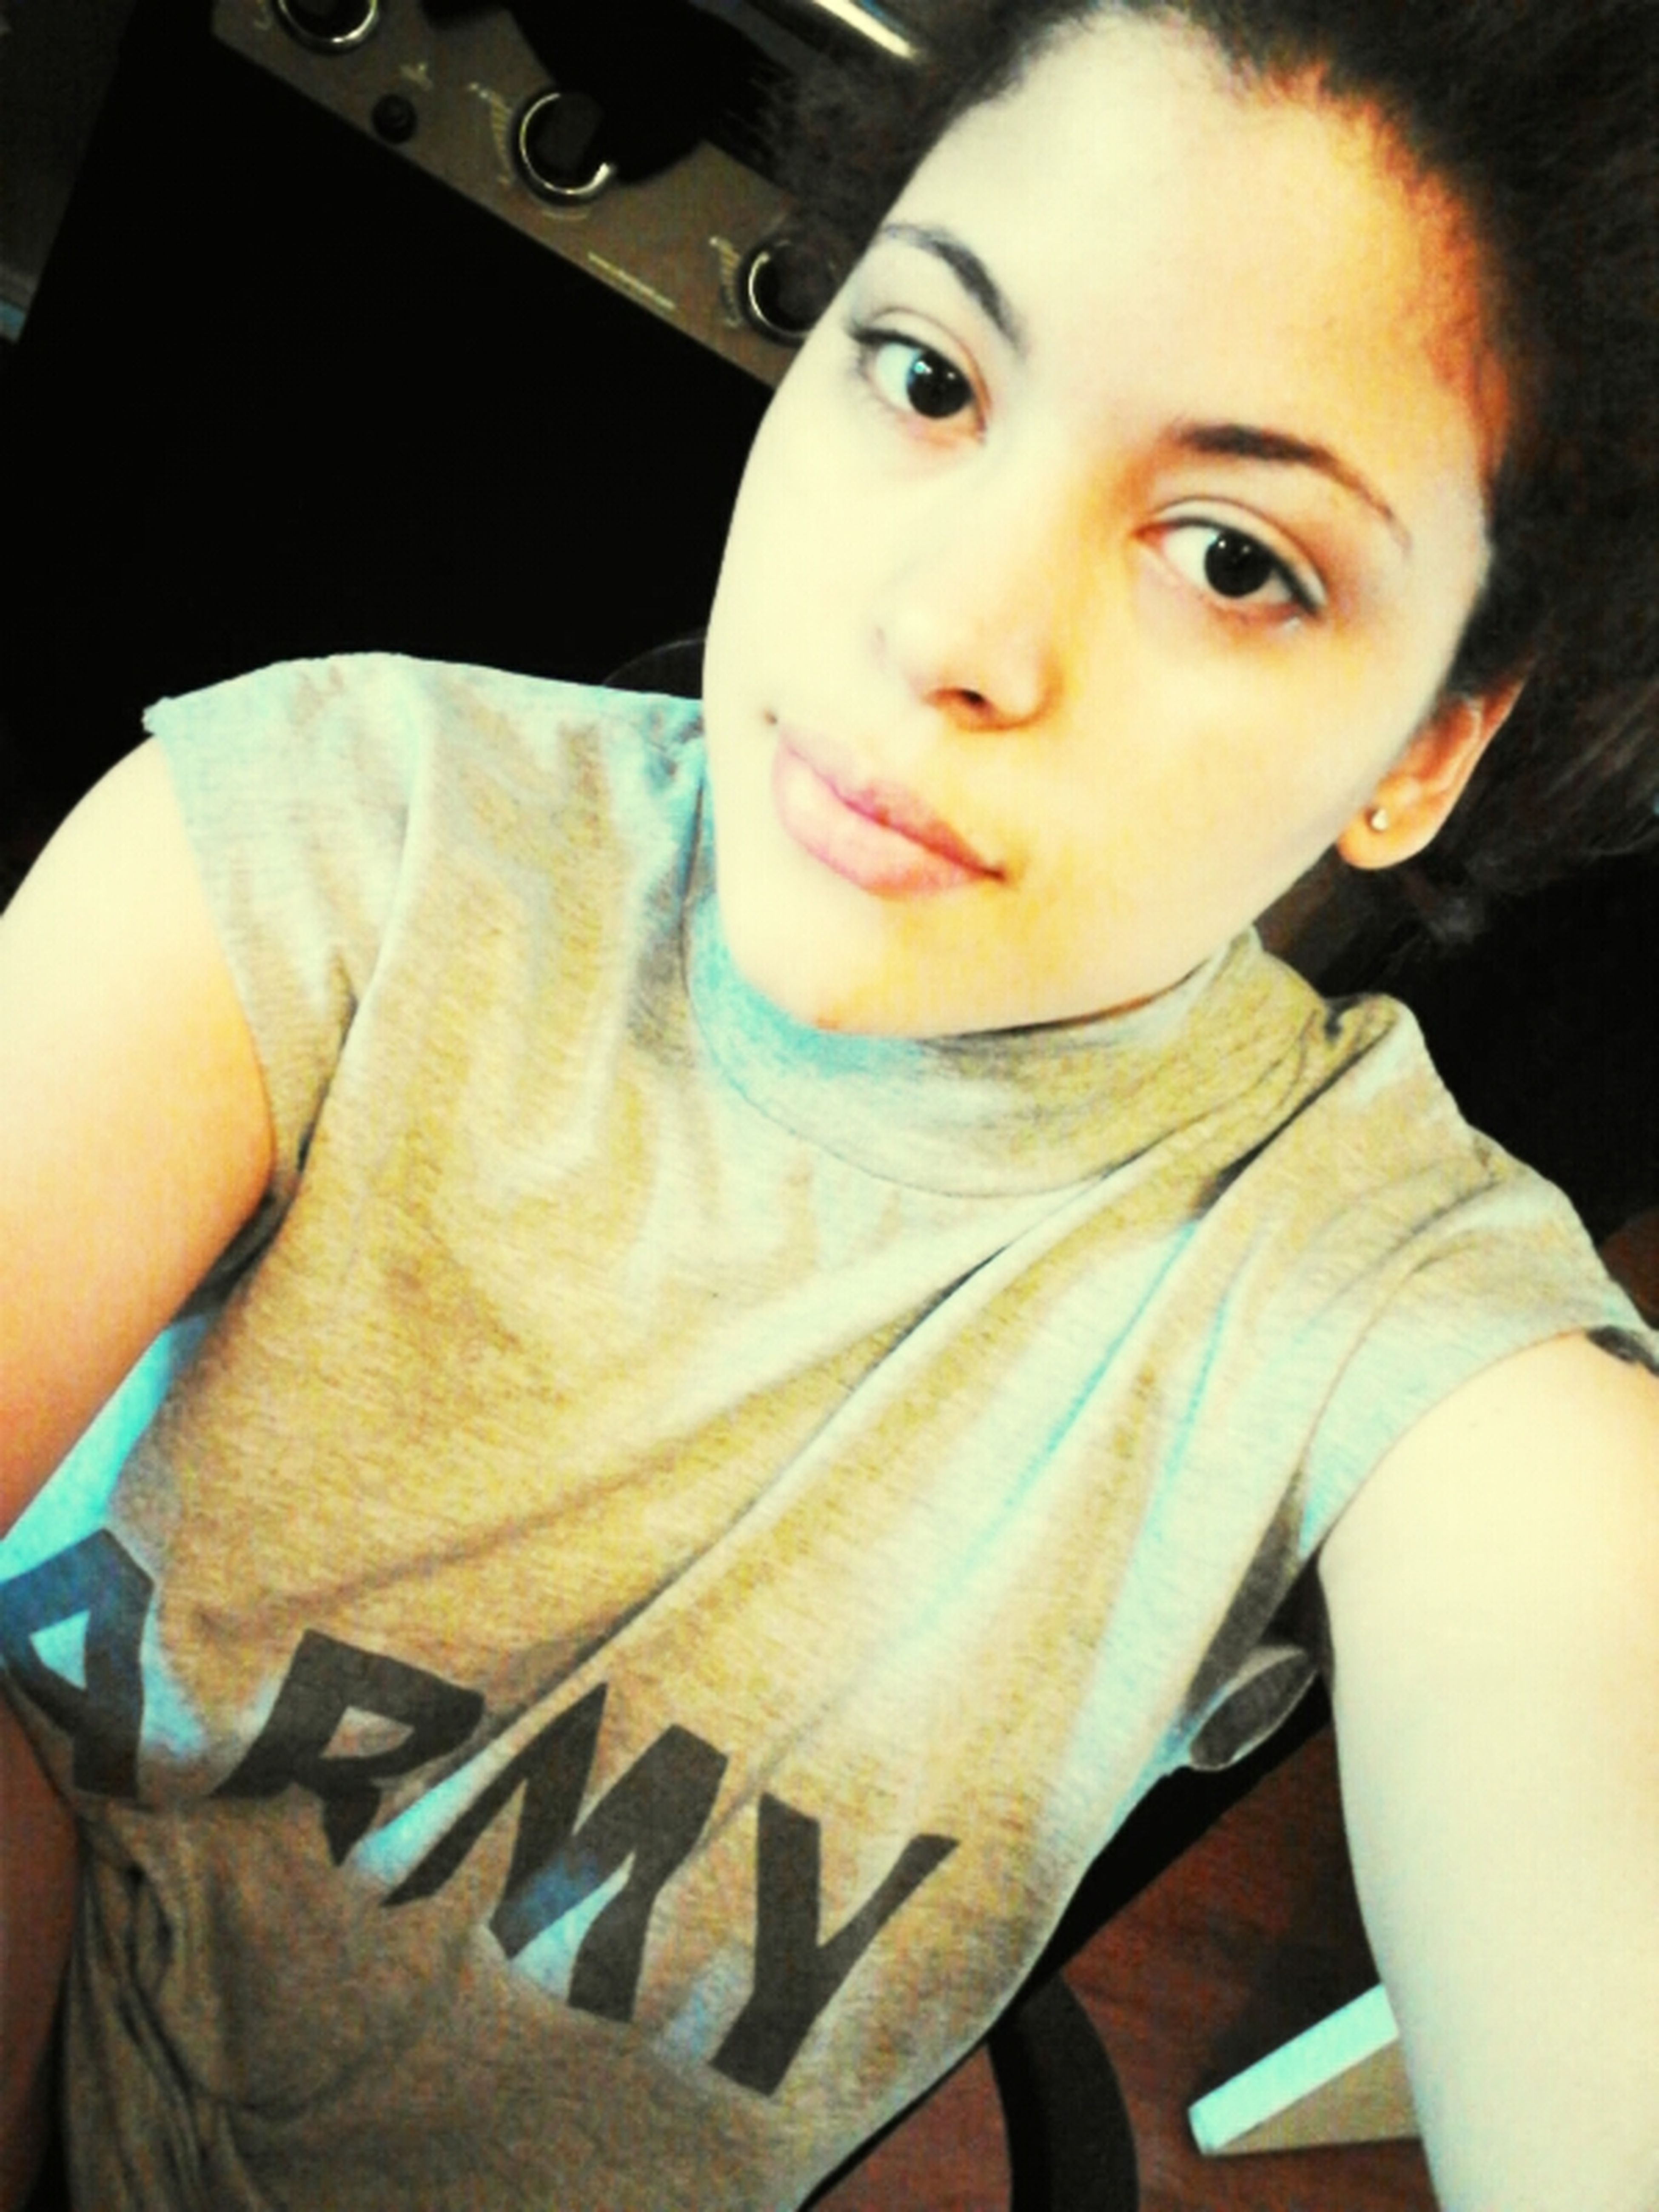 Waking Up With My Bf Shirt On <3